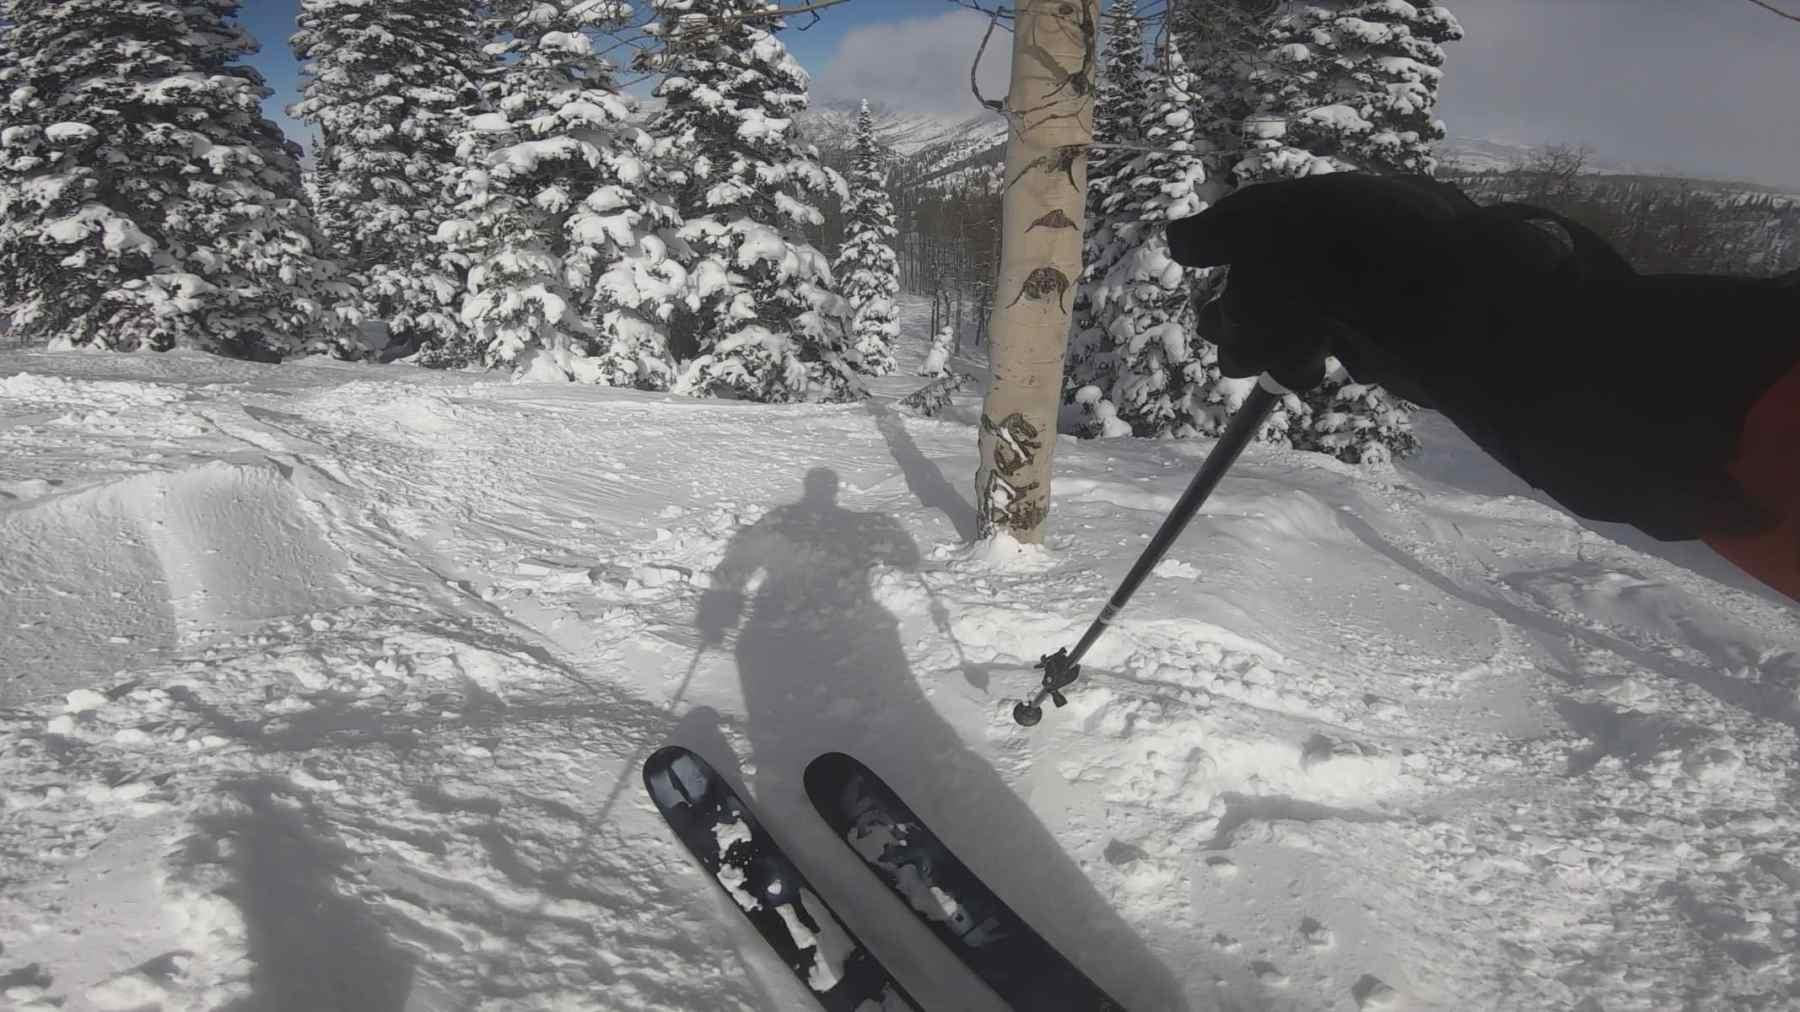 Low angle tree skiing